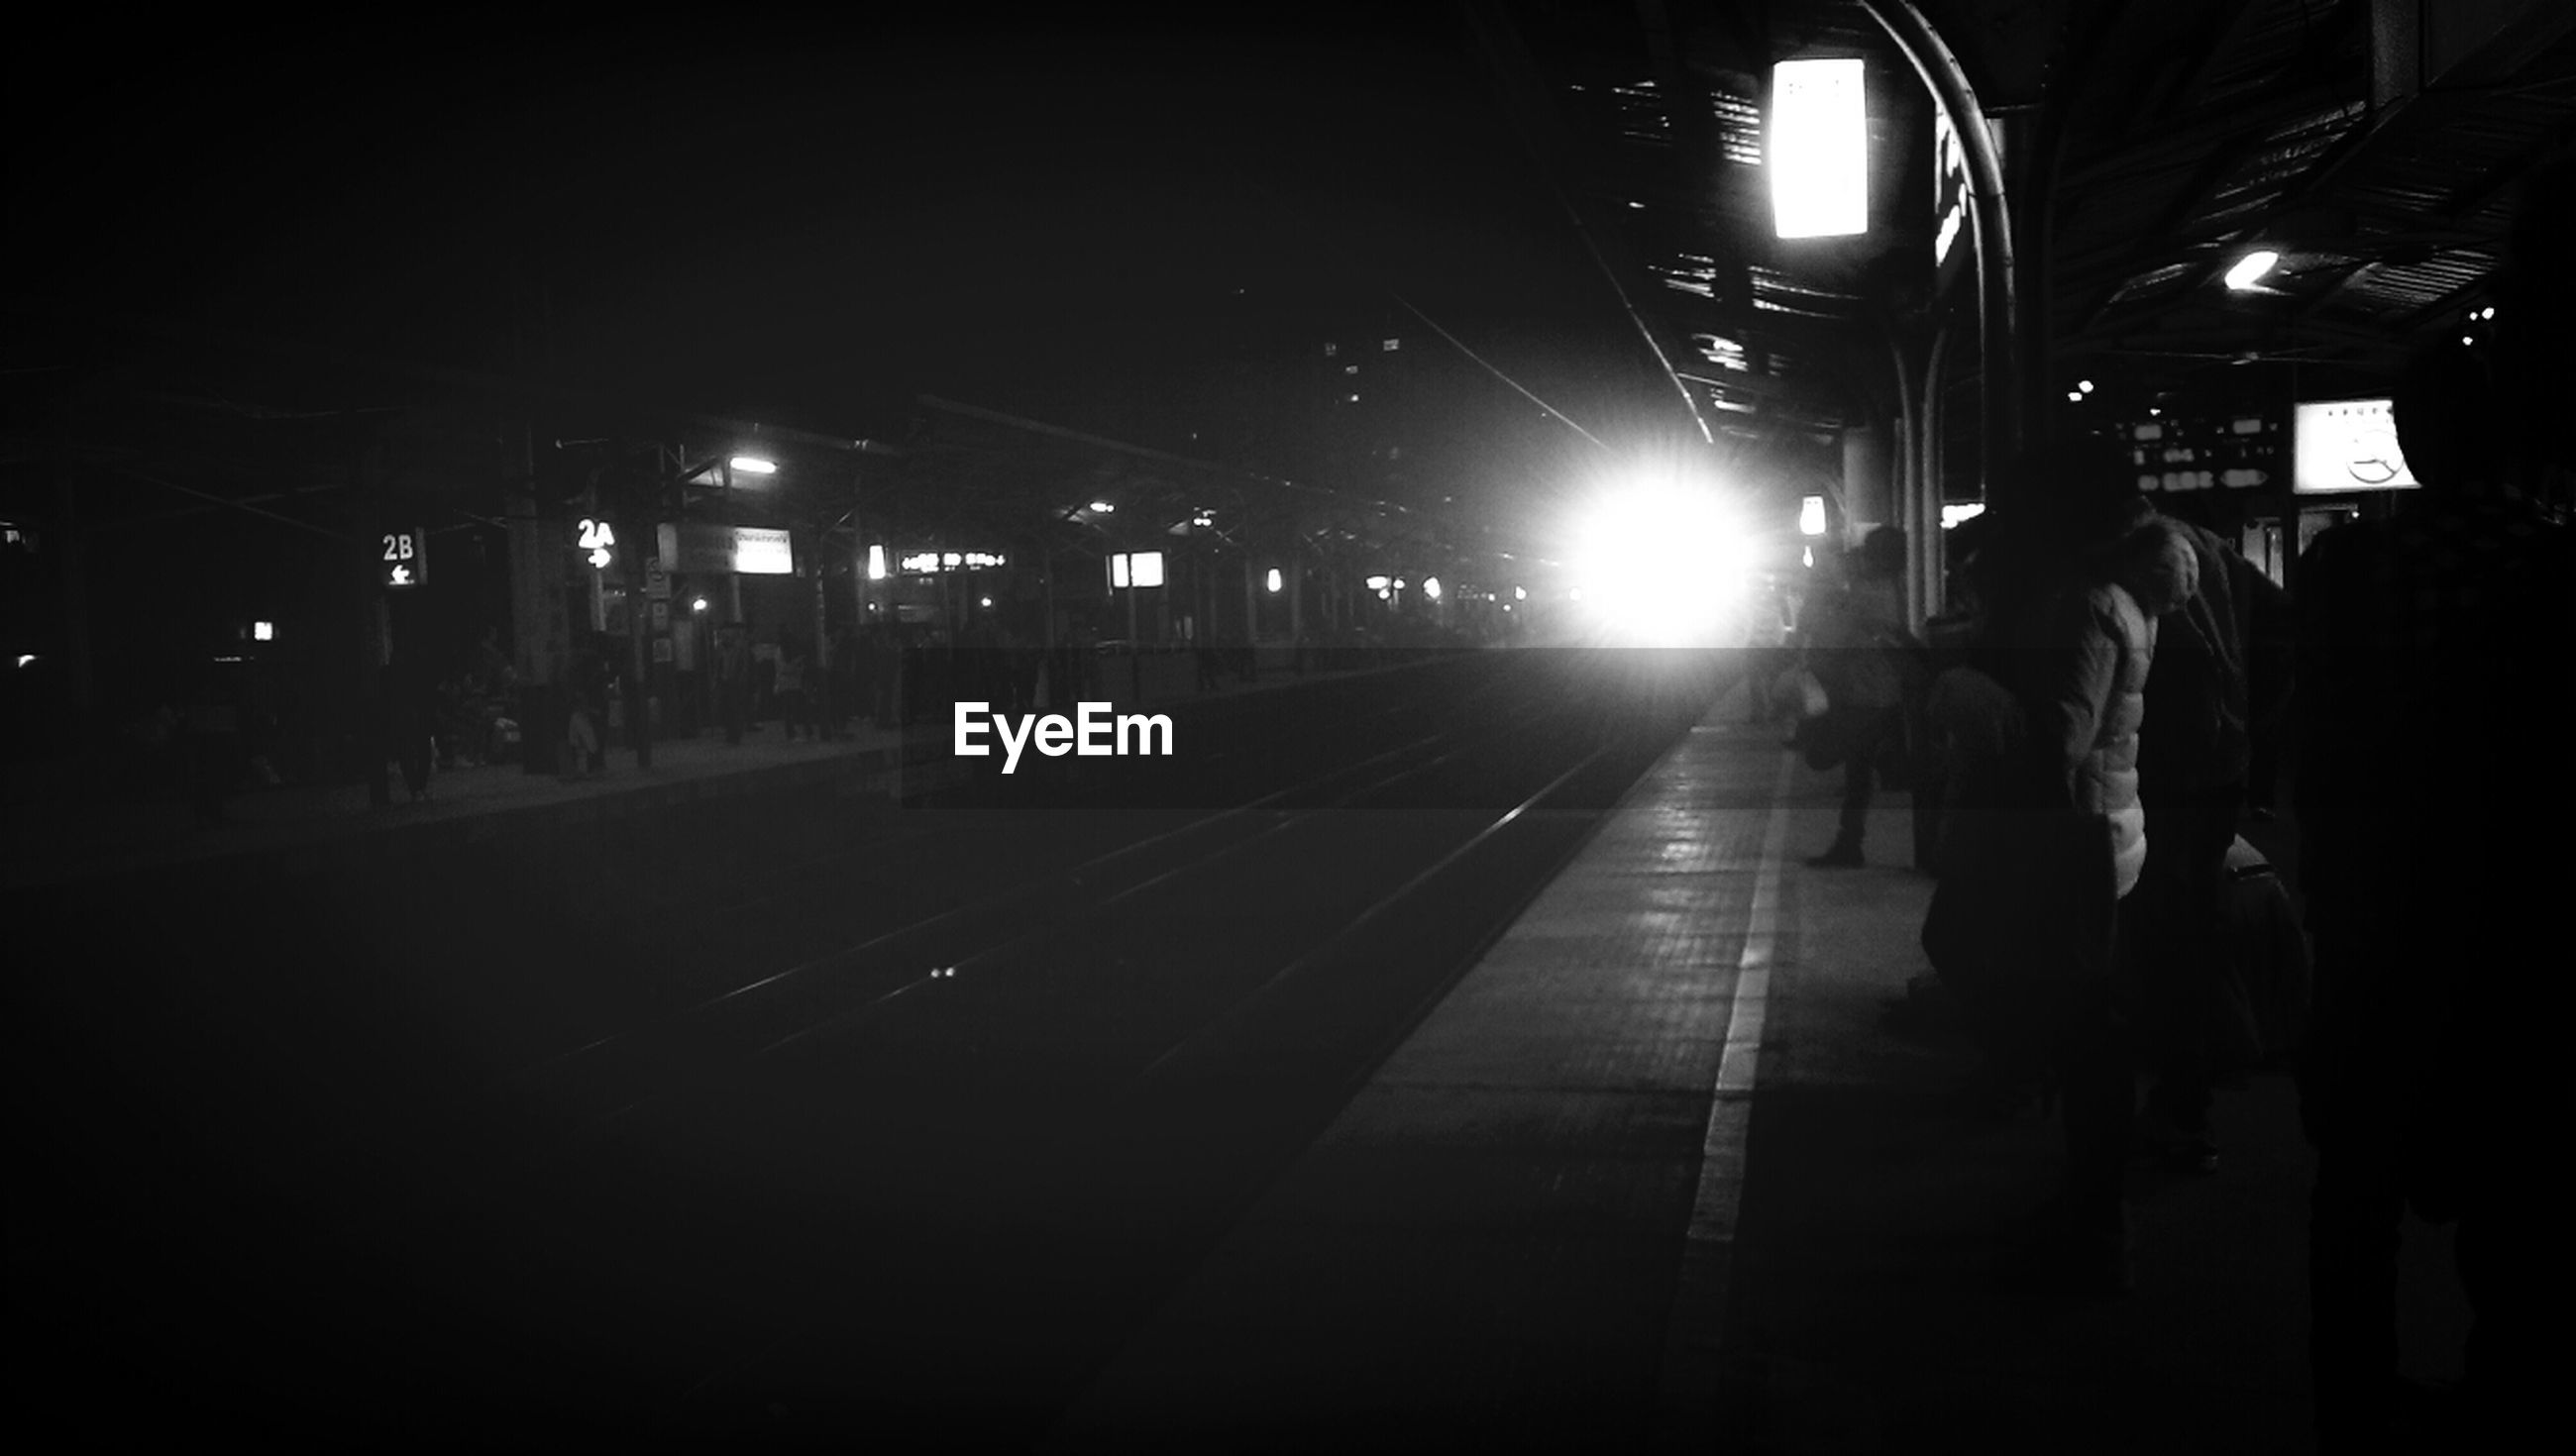 Passengers at platform and light of arriving train